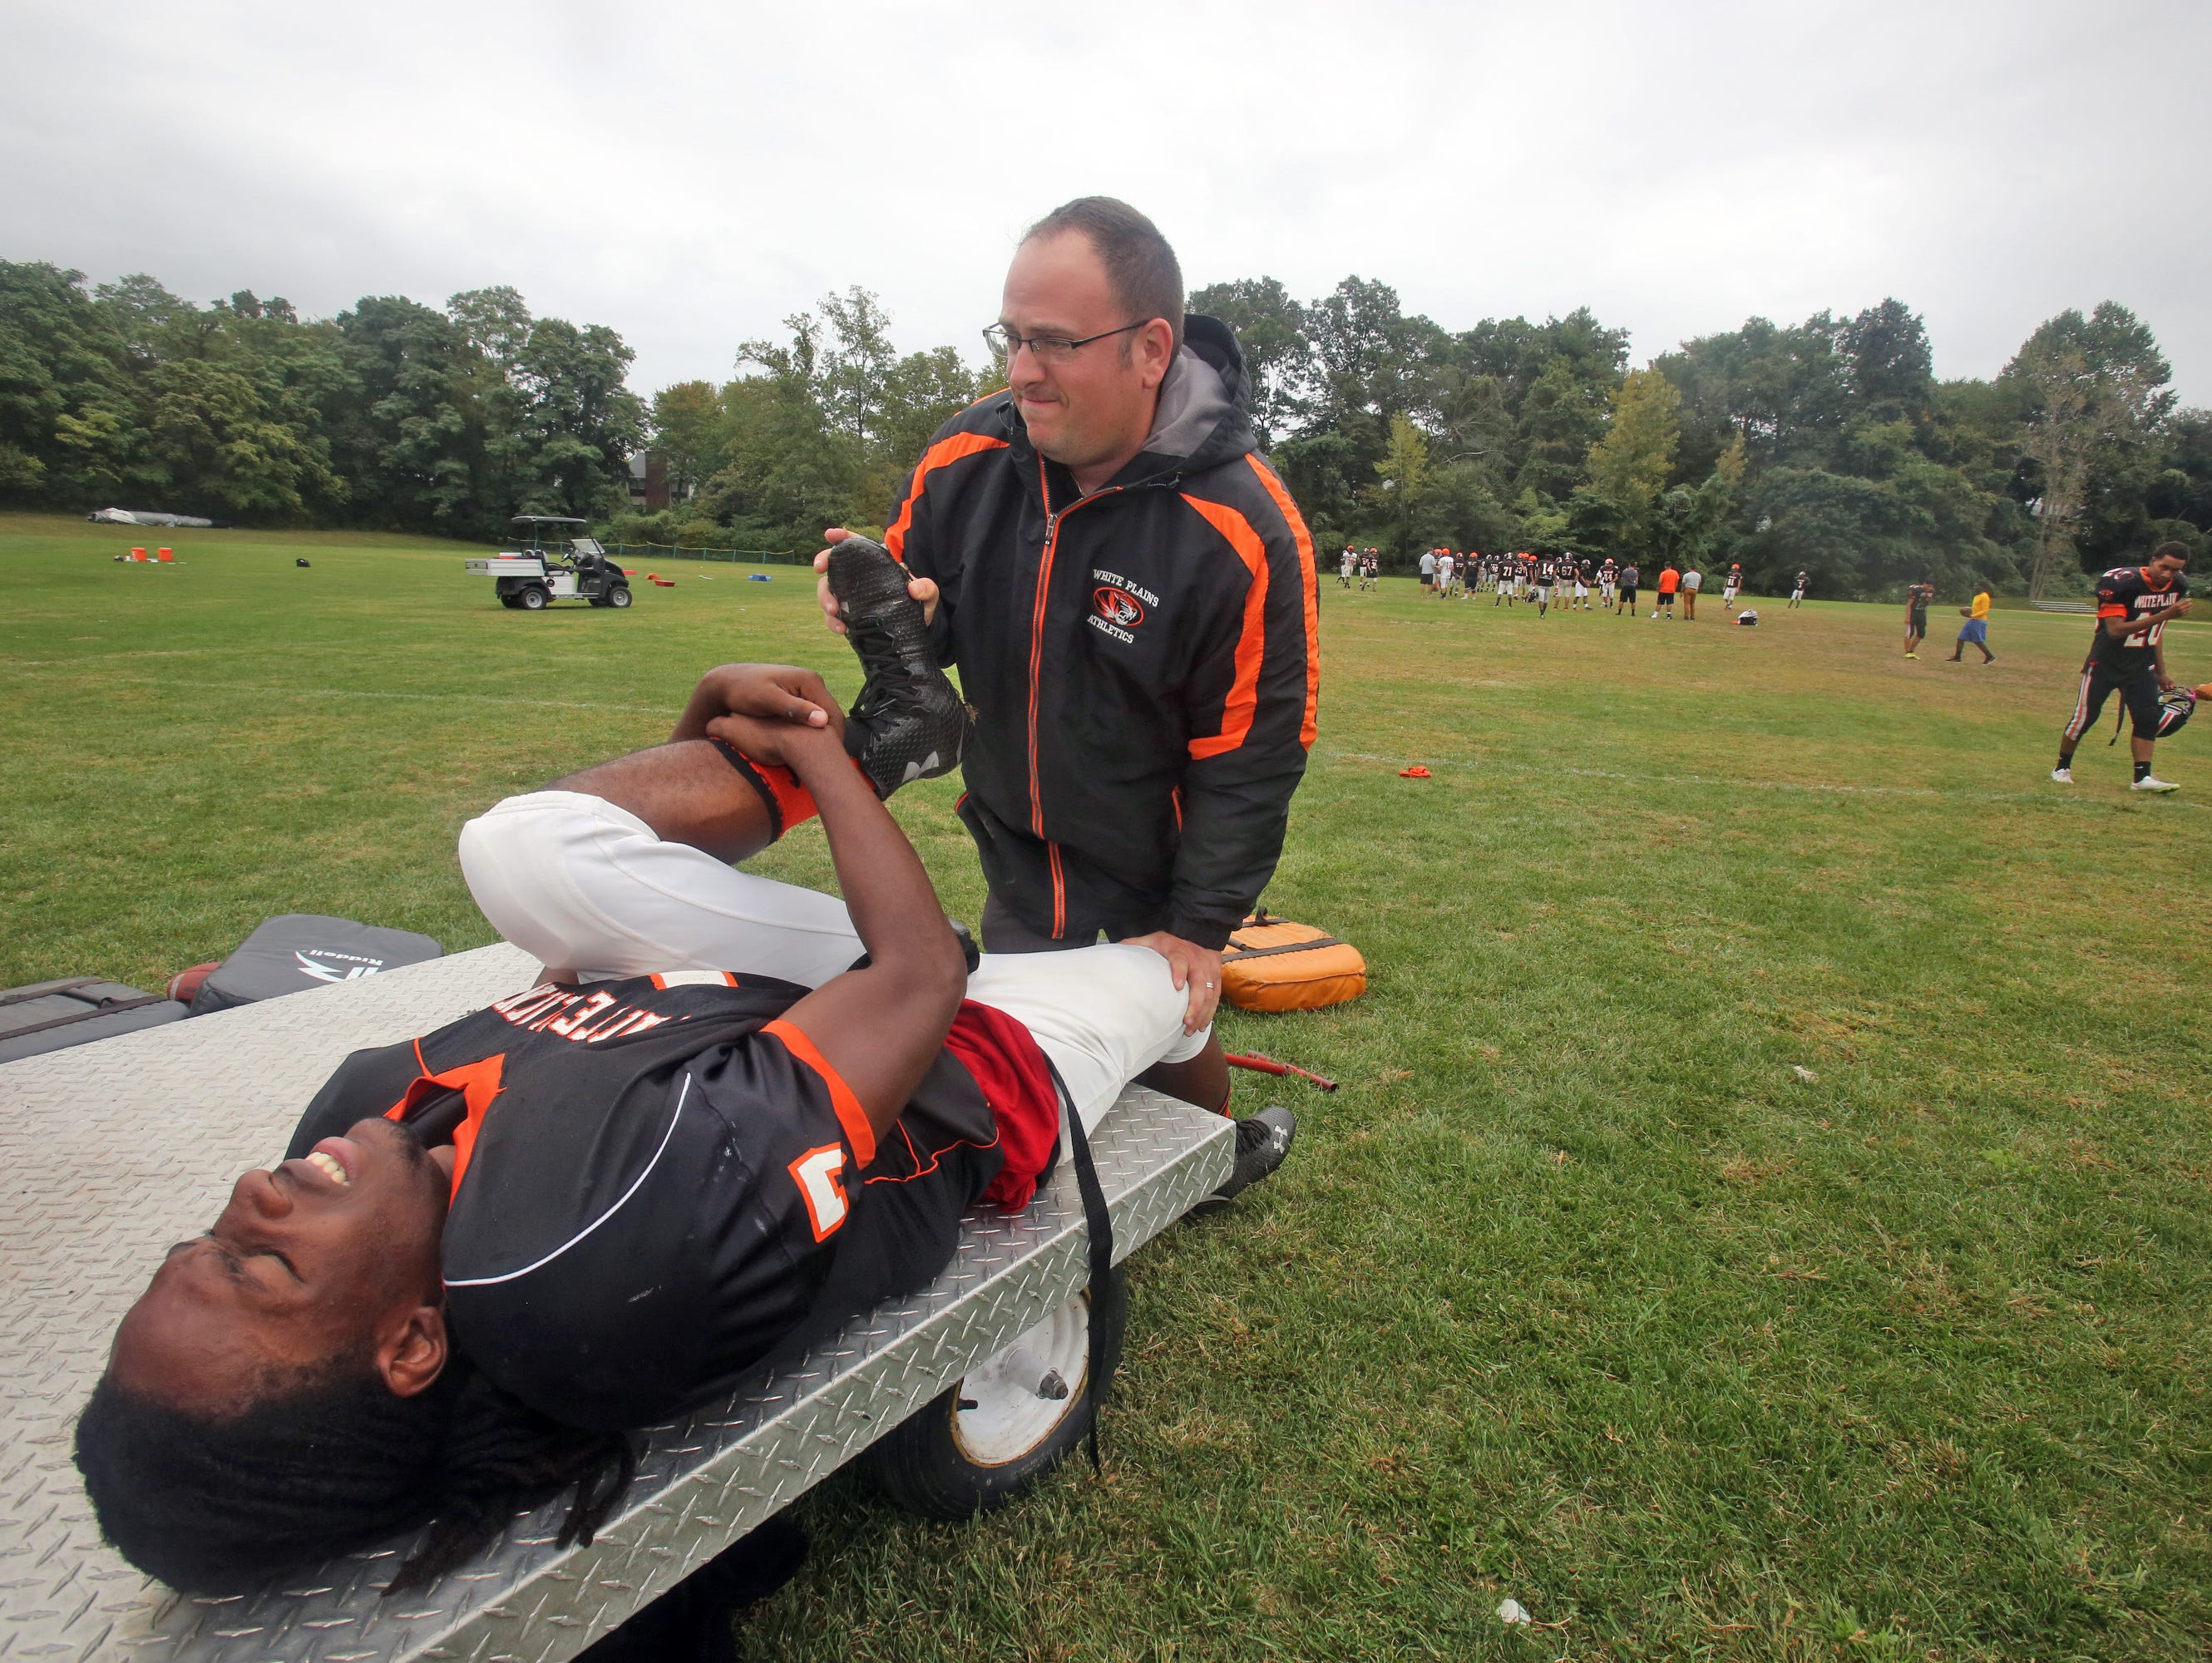 White Plains High School football player Eddie Thomas has his leg stretched by athletic trainer Mike Mirabella during practice Sept. 29, 2015.